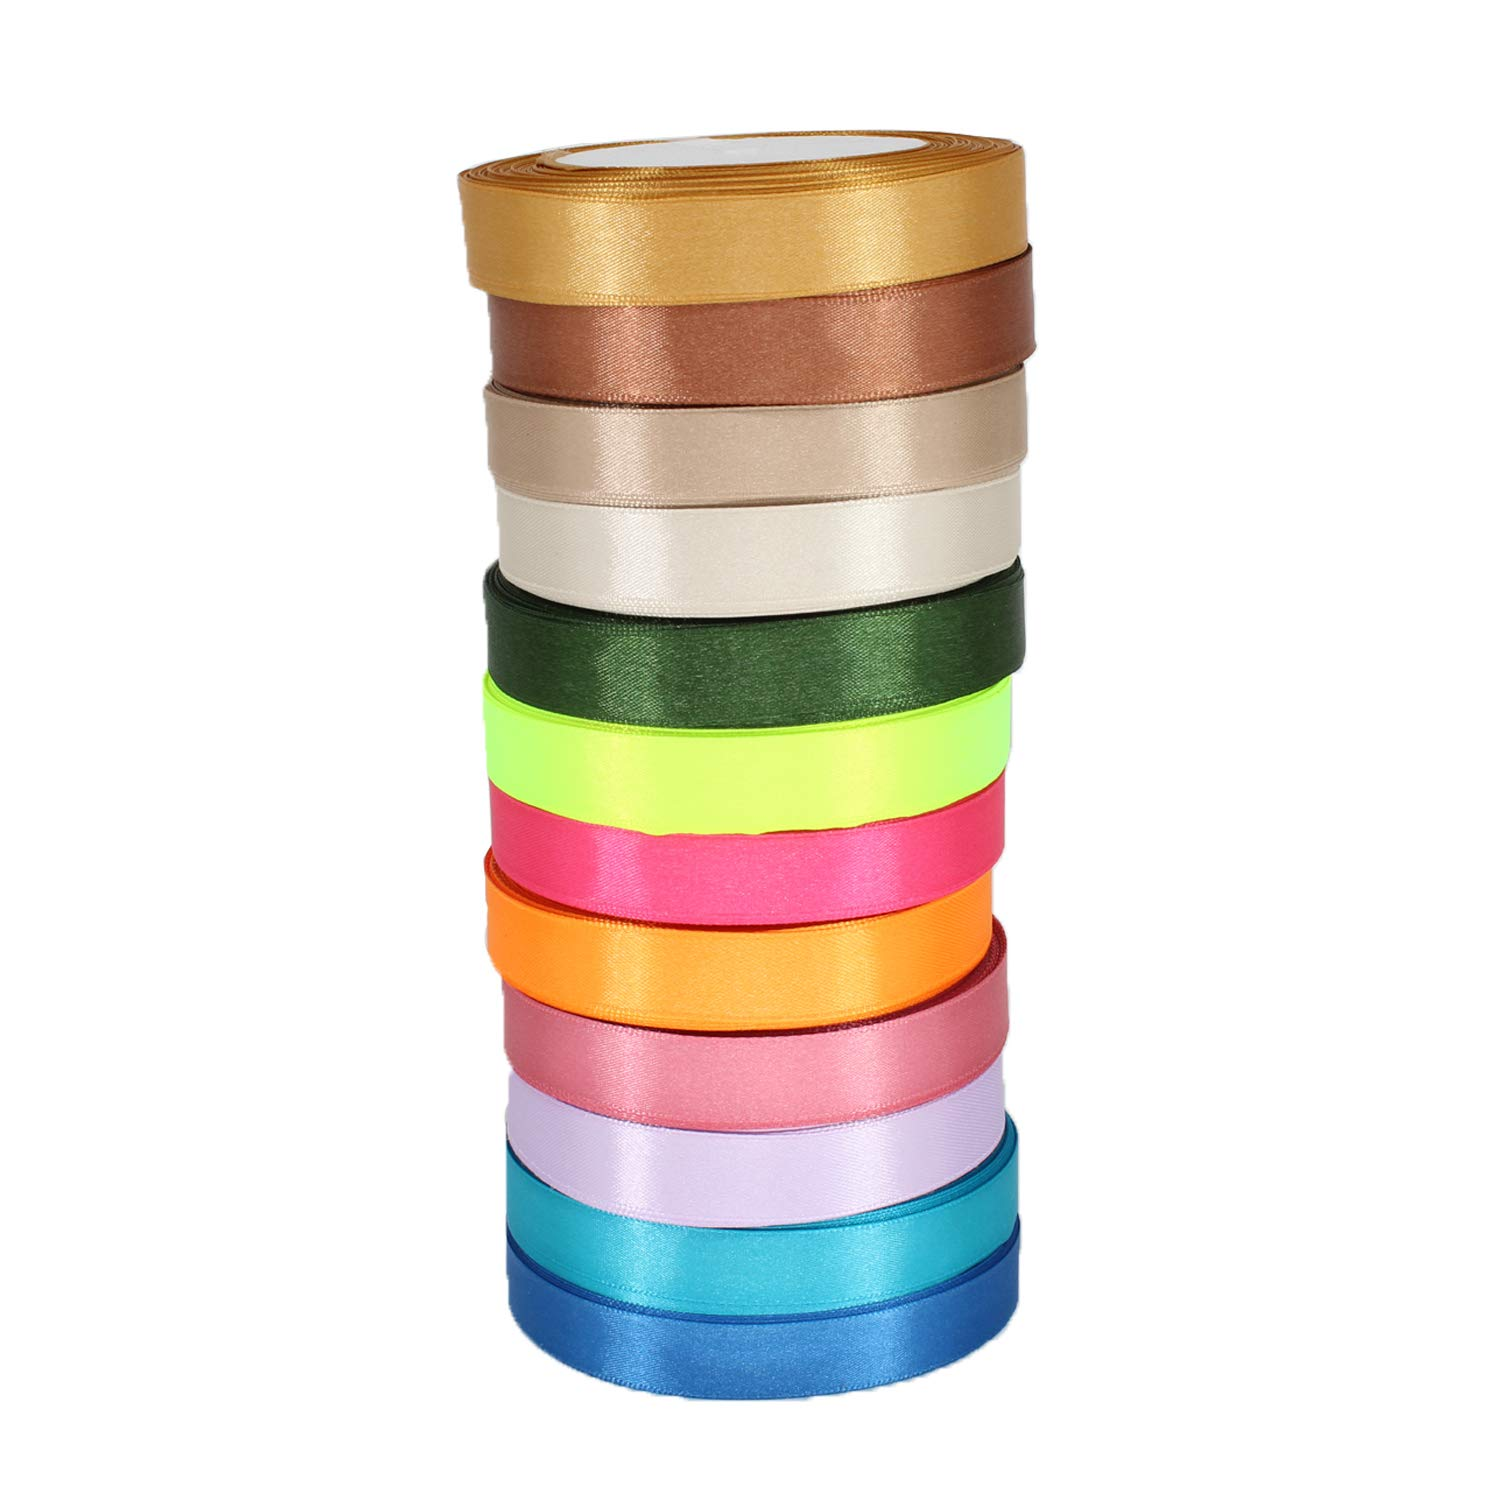 Trimming Shop 6mm Satin Ribbon Rolls - 13 Assorted Colours - VALUE PACK - Polyester Ribbons for Fabric, Arts and Crafts, Bows, Wedding, Birthday Cake and Home Decoration (Option 1)